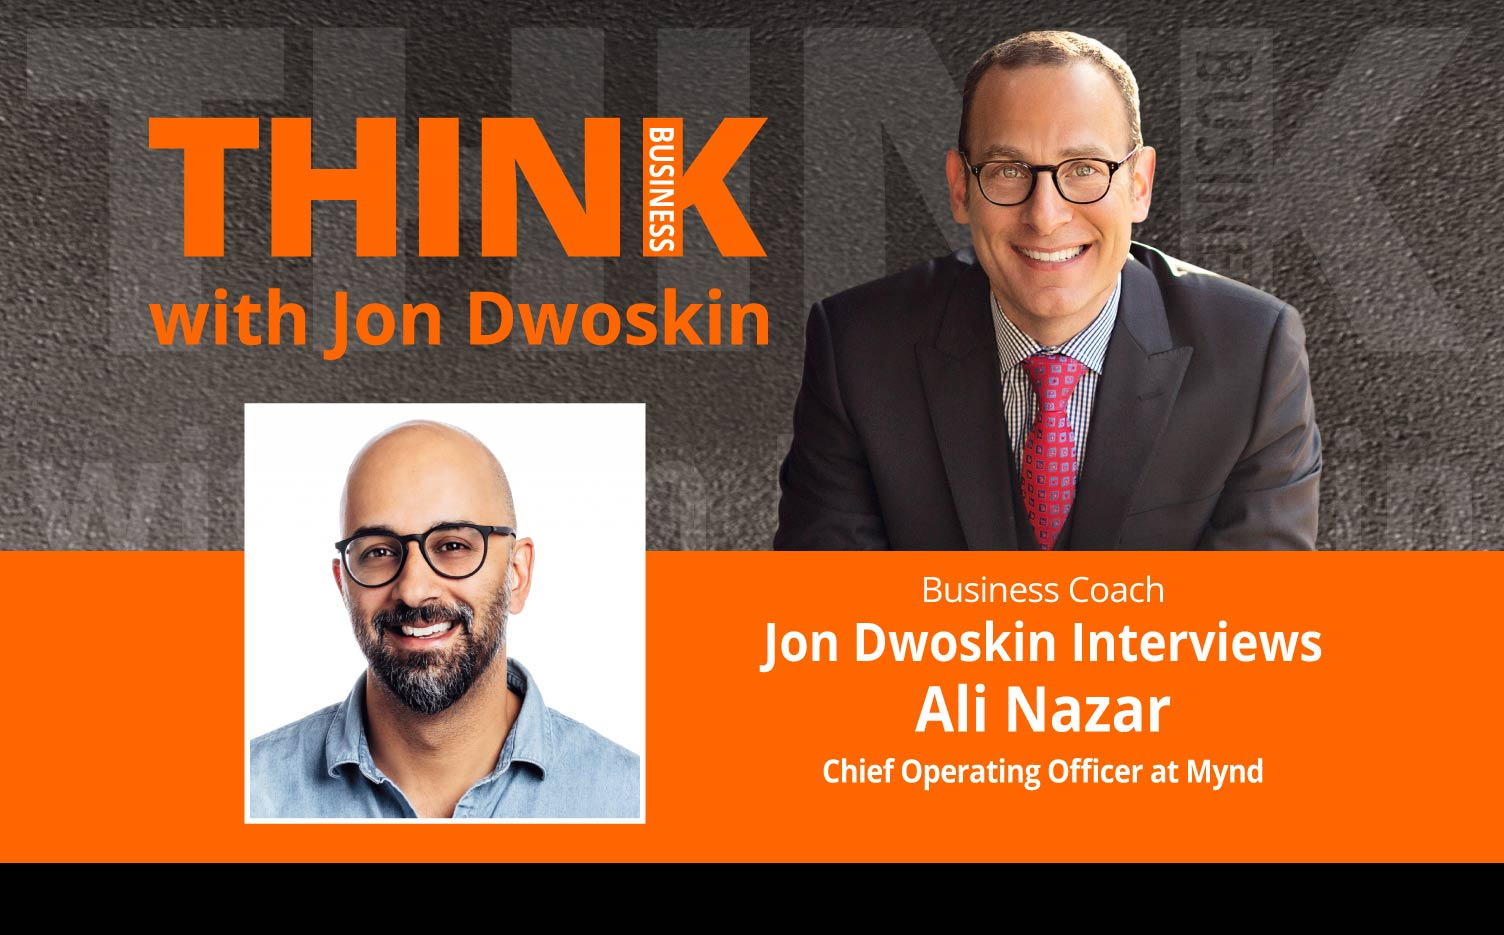 THINK Business Podcast: Jon Dwoskin Interviews Ali Nazar, Chief Operating Officer at Mynd